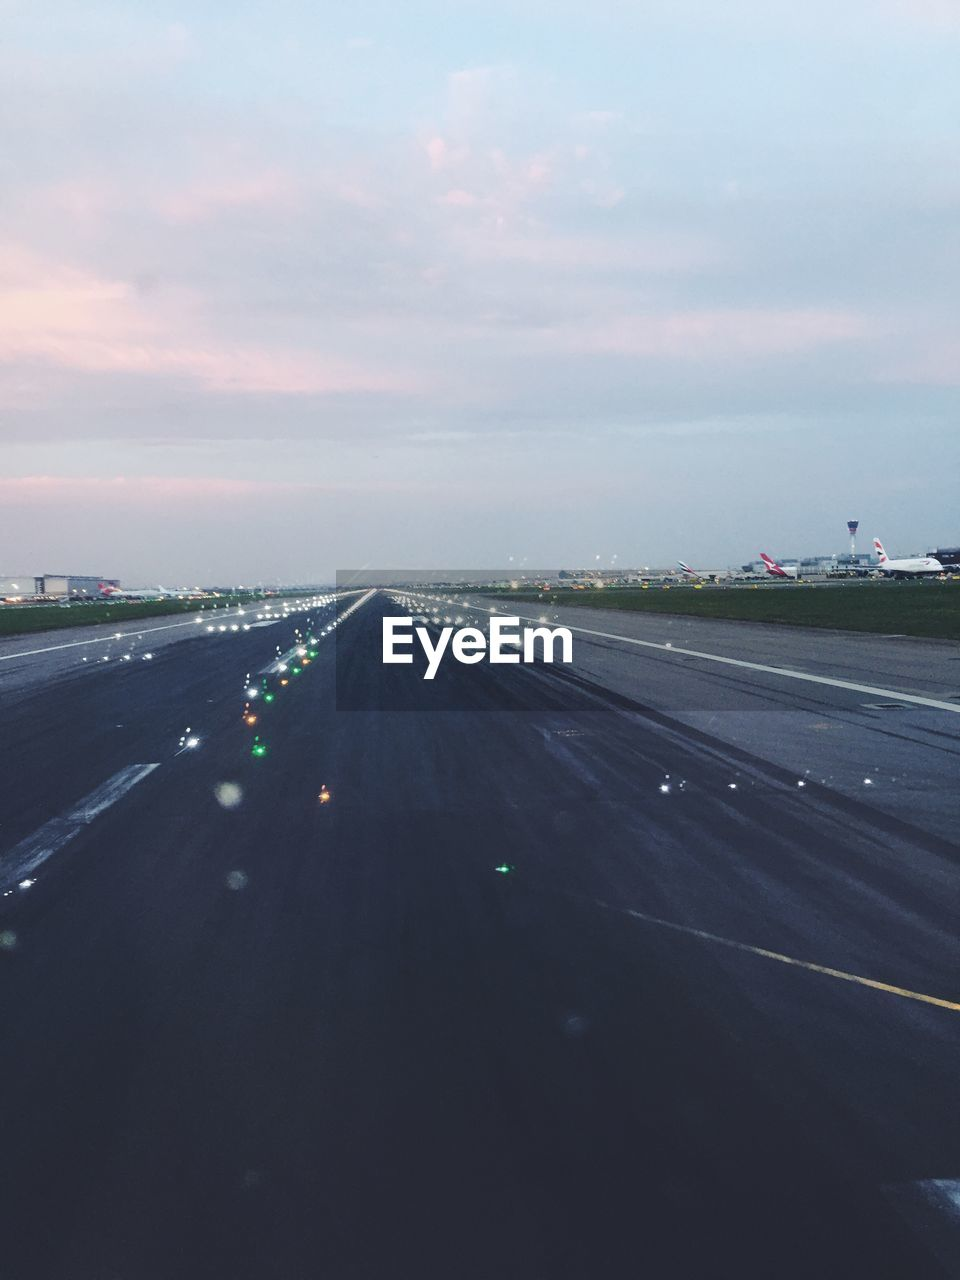 High angle view of illuminated airport runway against cloudy sky during sunset